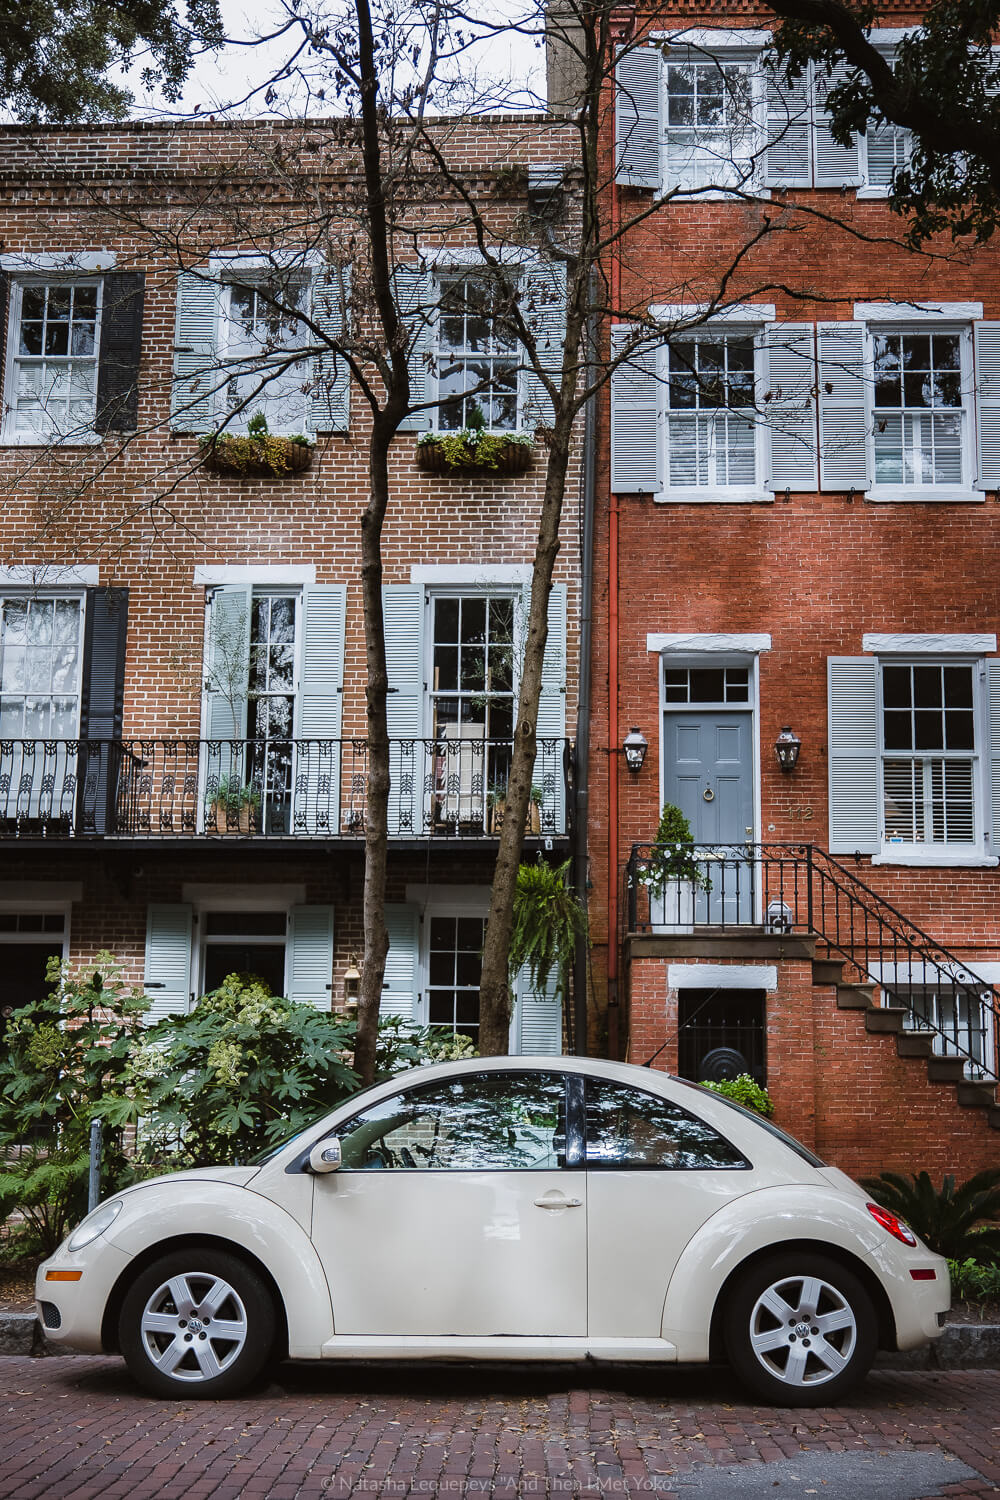 """The streets and houses of Savannah, Georgia. Travel photography and guide by © Natasha Lequepeys for """"And Then I Met Yoko"""". #savannah #usa #travelguide #travelblog"""